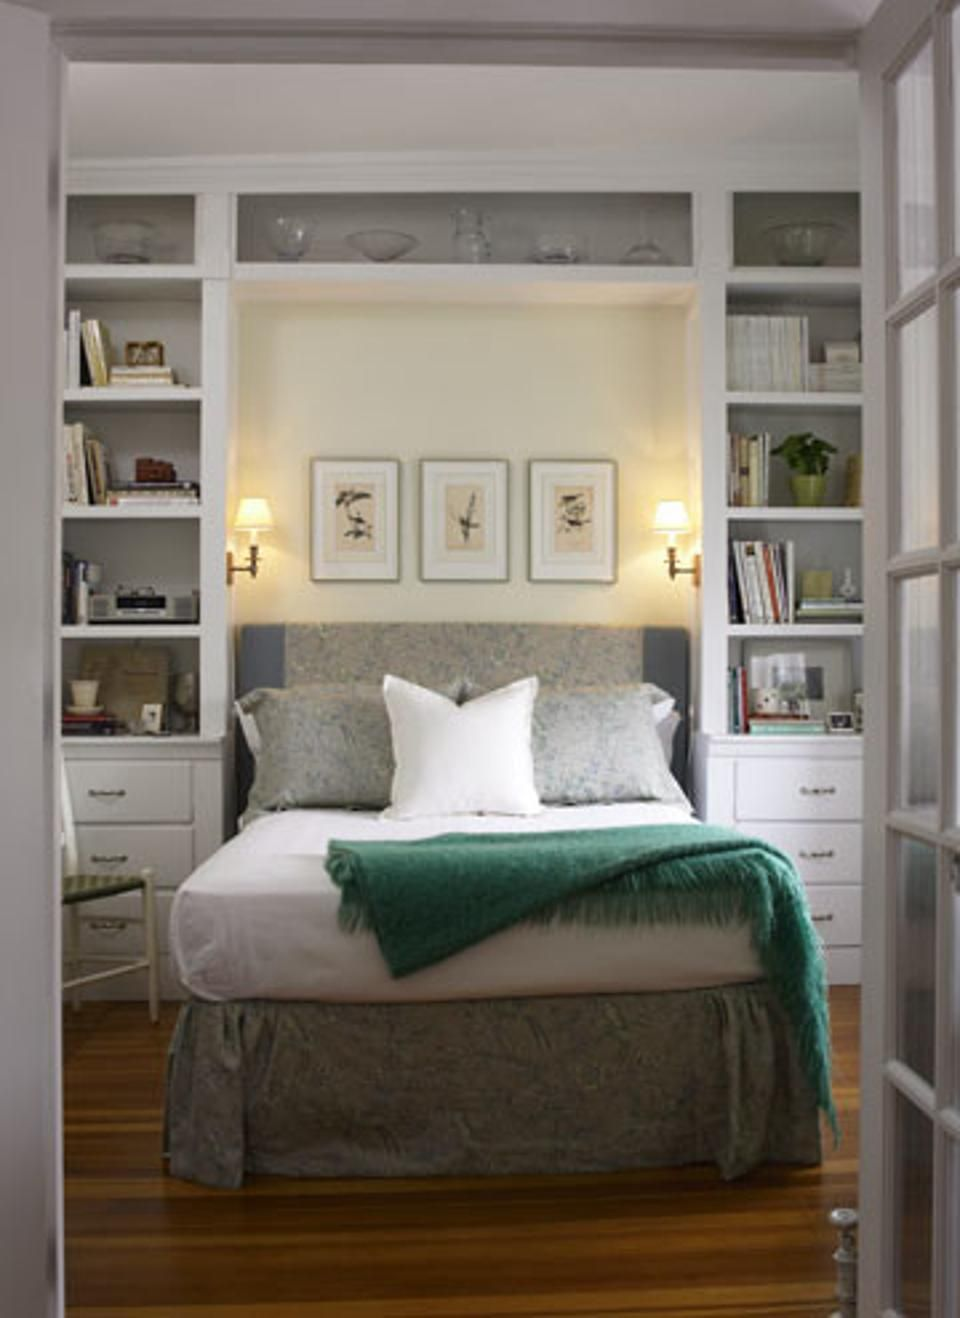 Great Bedrooms 10 tips to make a small bedroom look great | compact, boudoir and